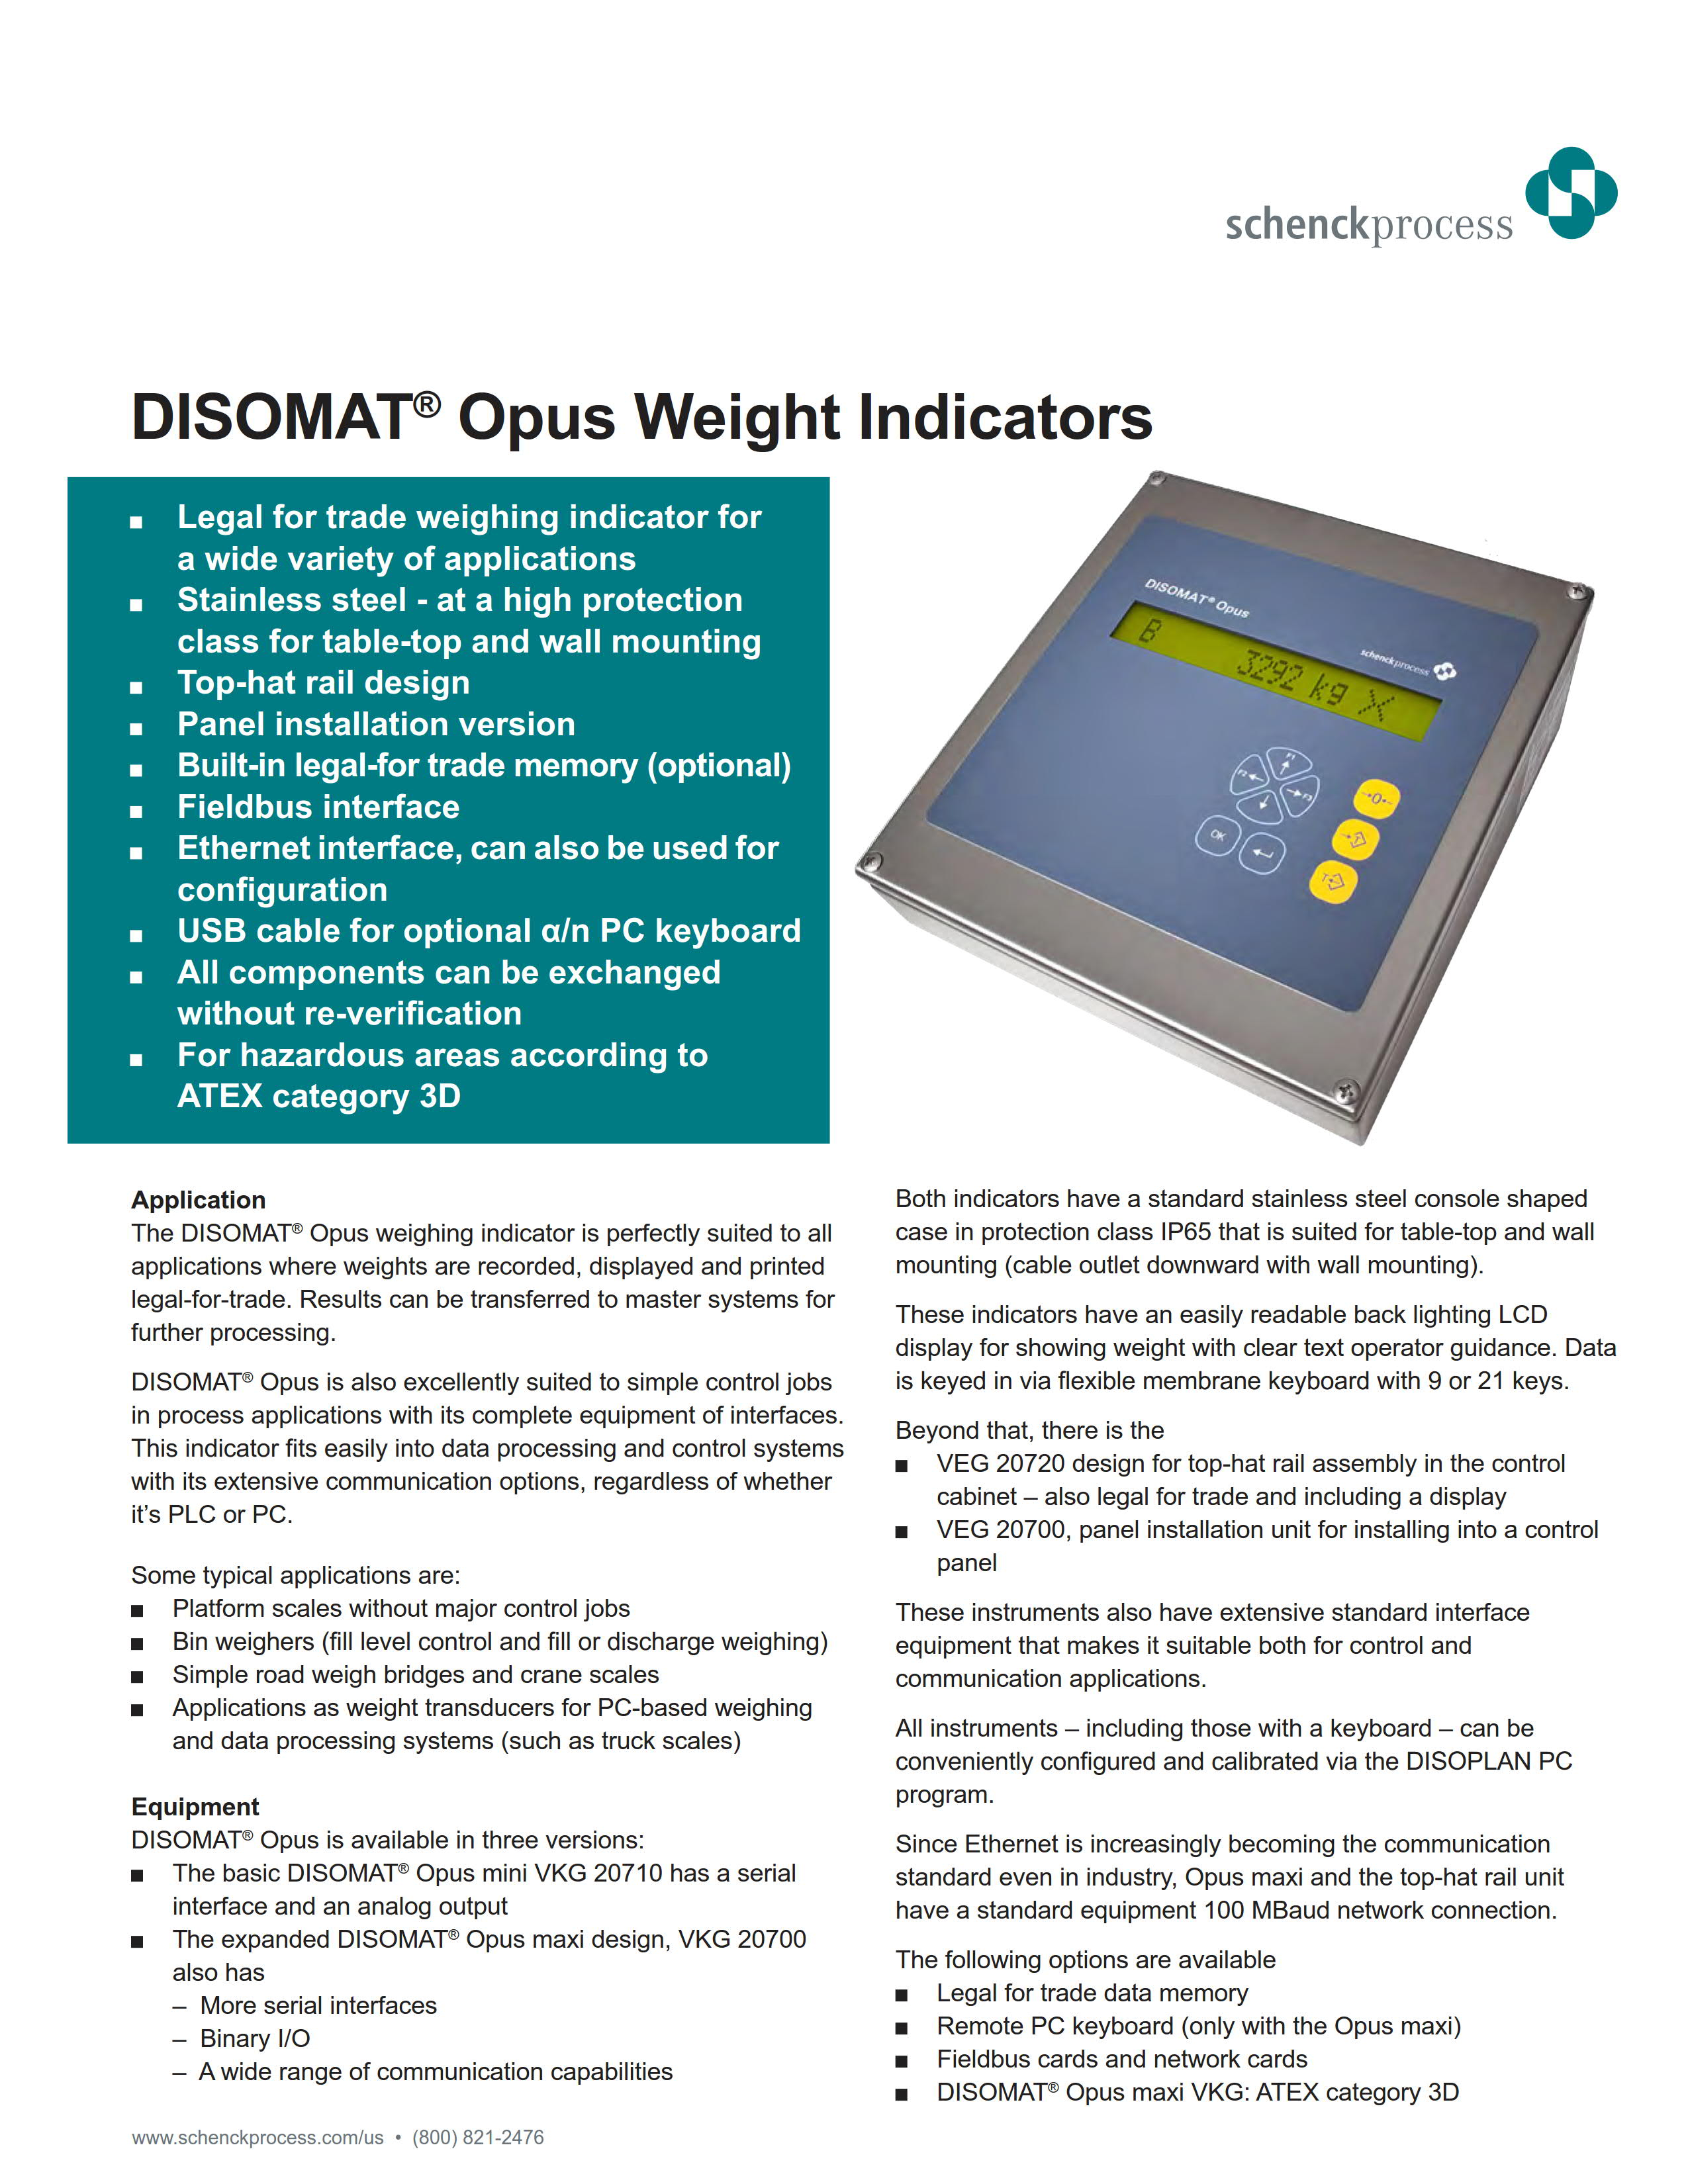 DISOMAT® Opus Weight Indicators